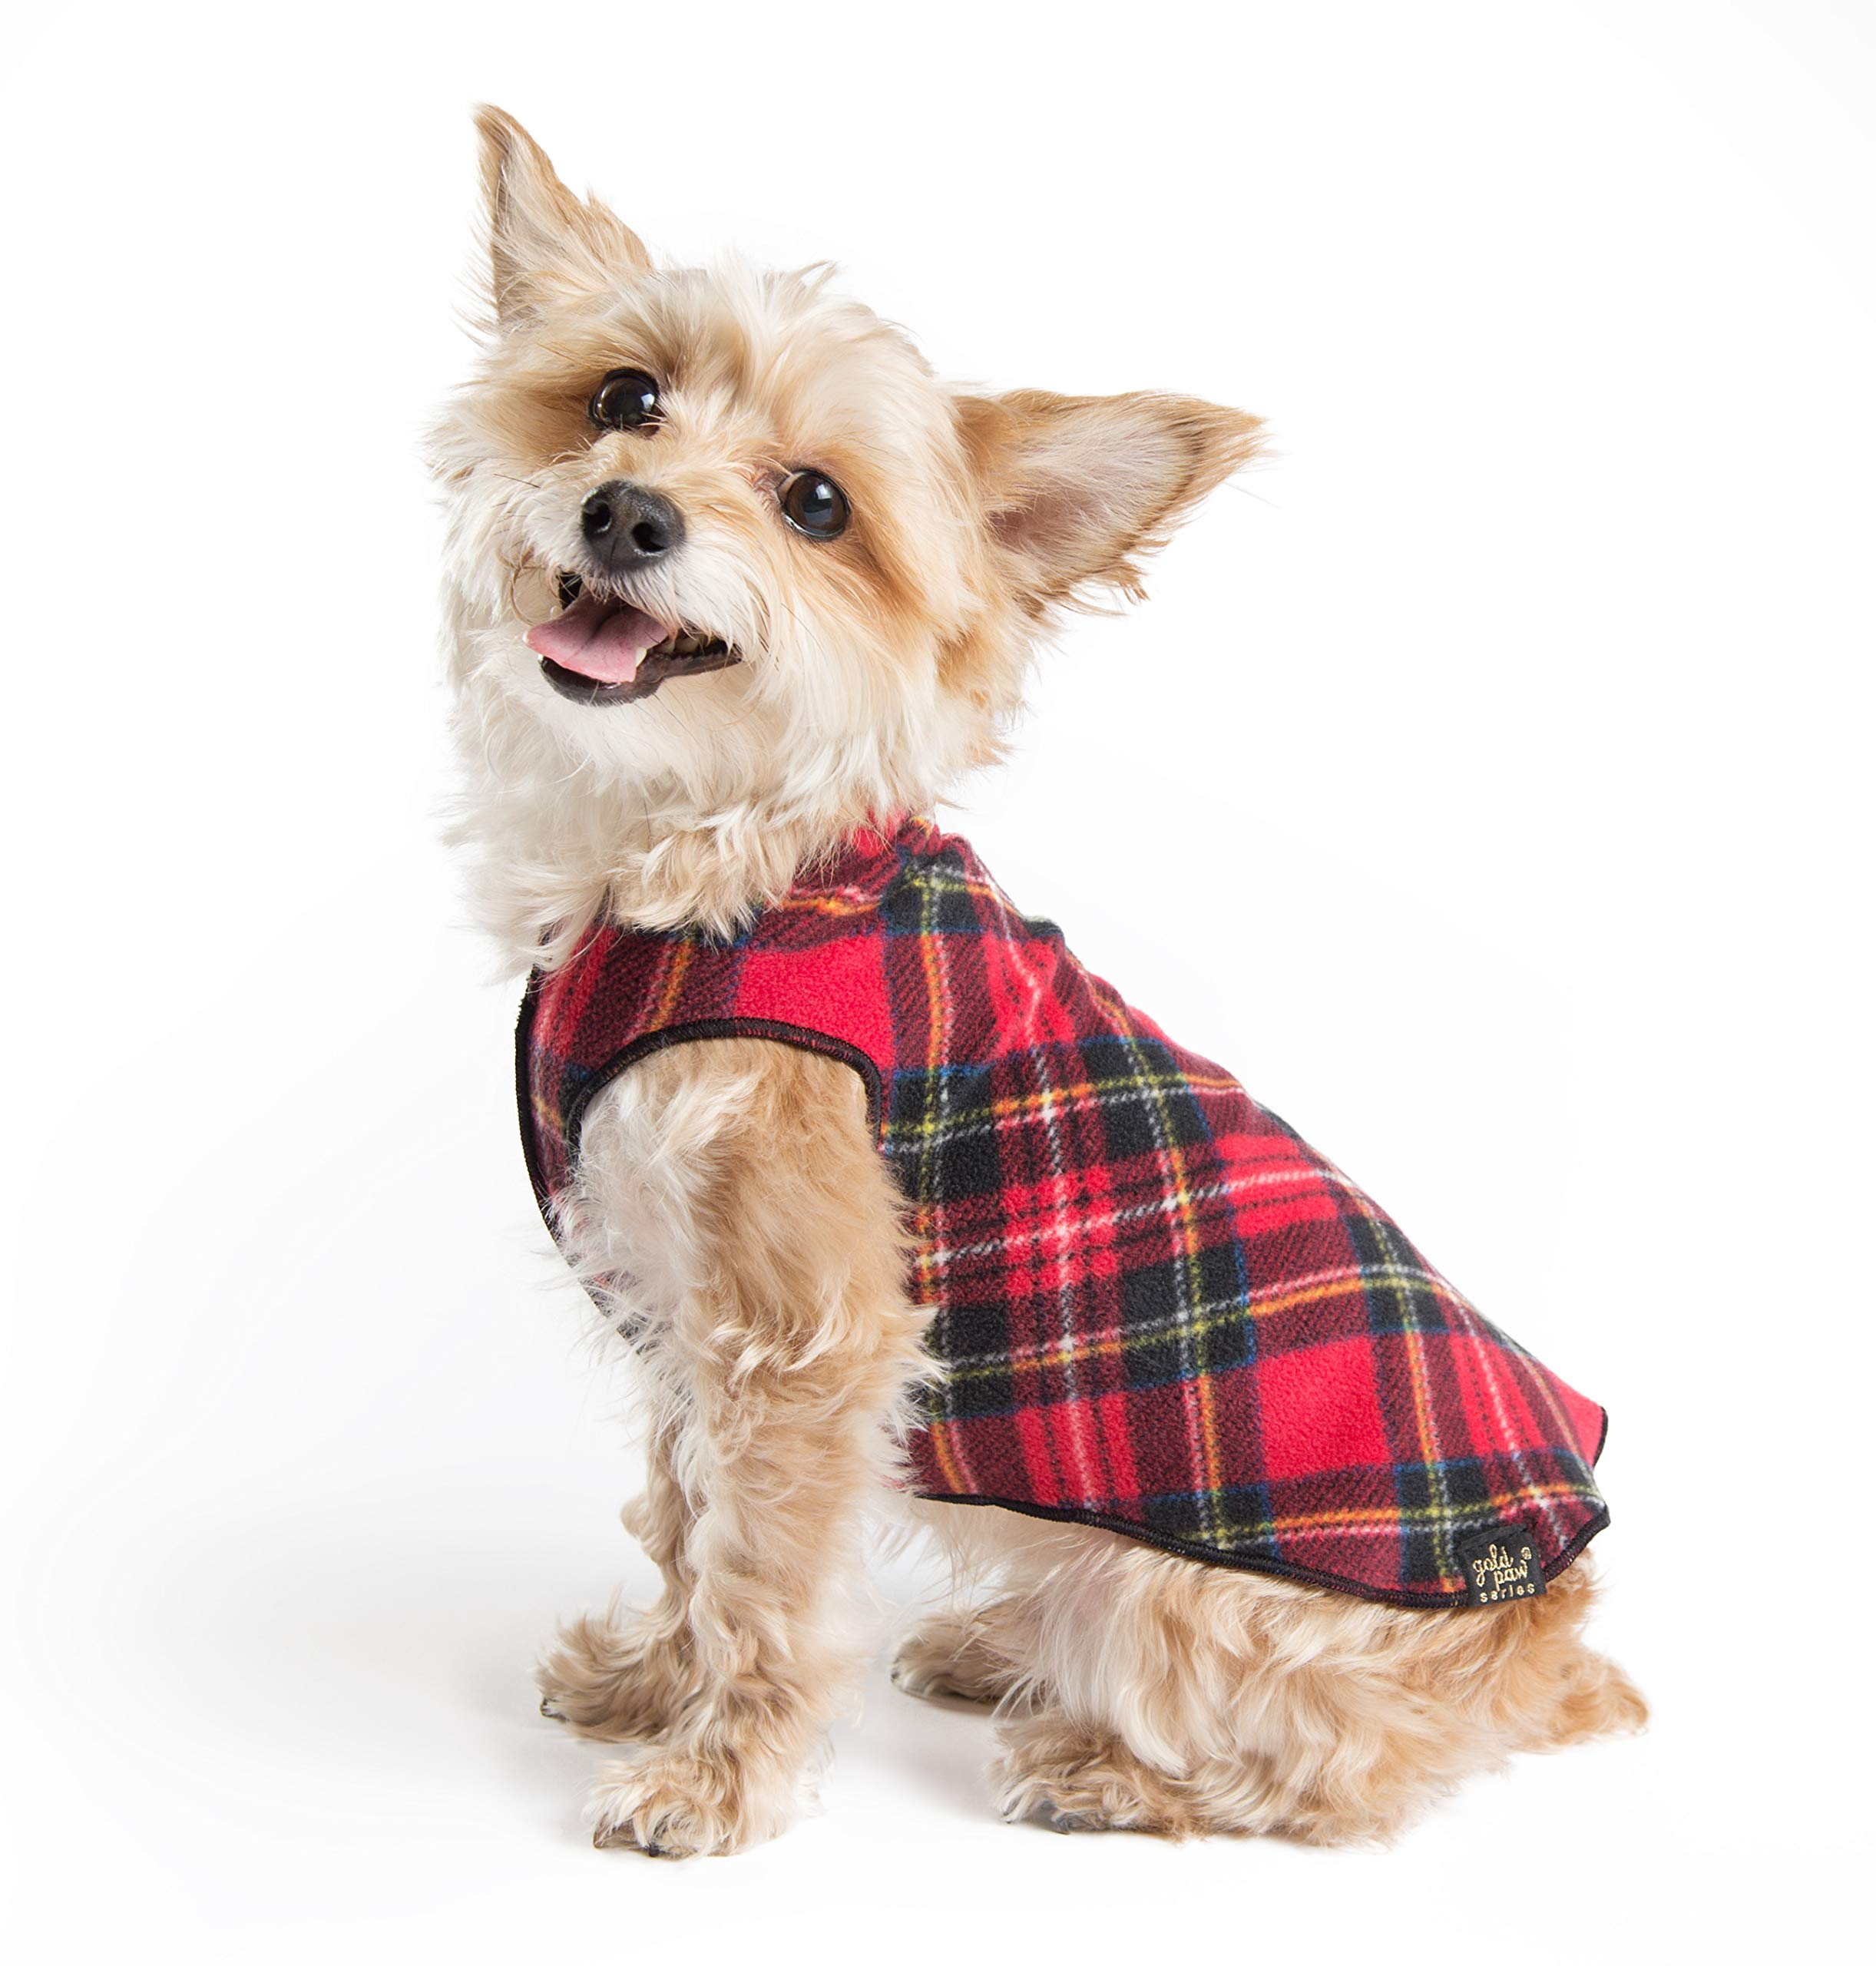 Gold Paw Stretch Fleece Dog Coat - Soft, Warm Dog Clothes, Stretchy Pet Sweater - Machine Washable, Eco Friendly - All Season - Sizes 2-33, Red Classic Plaid, Size 14 by Gold Paw